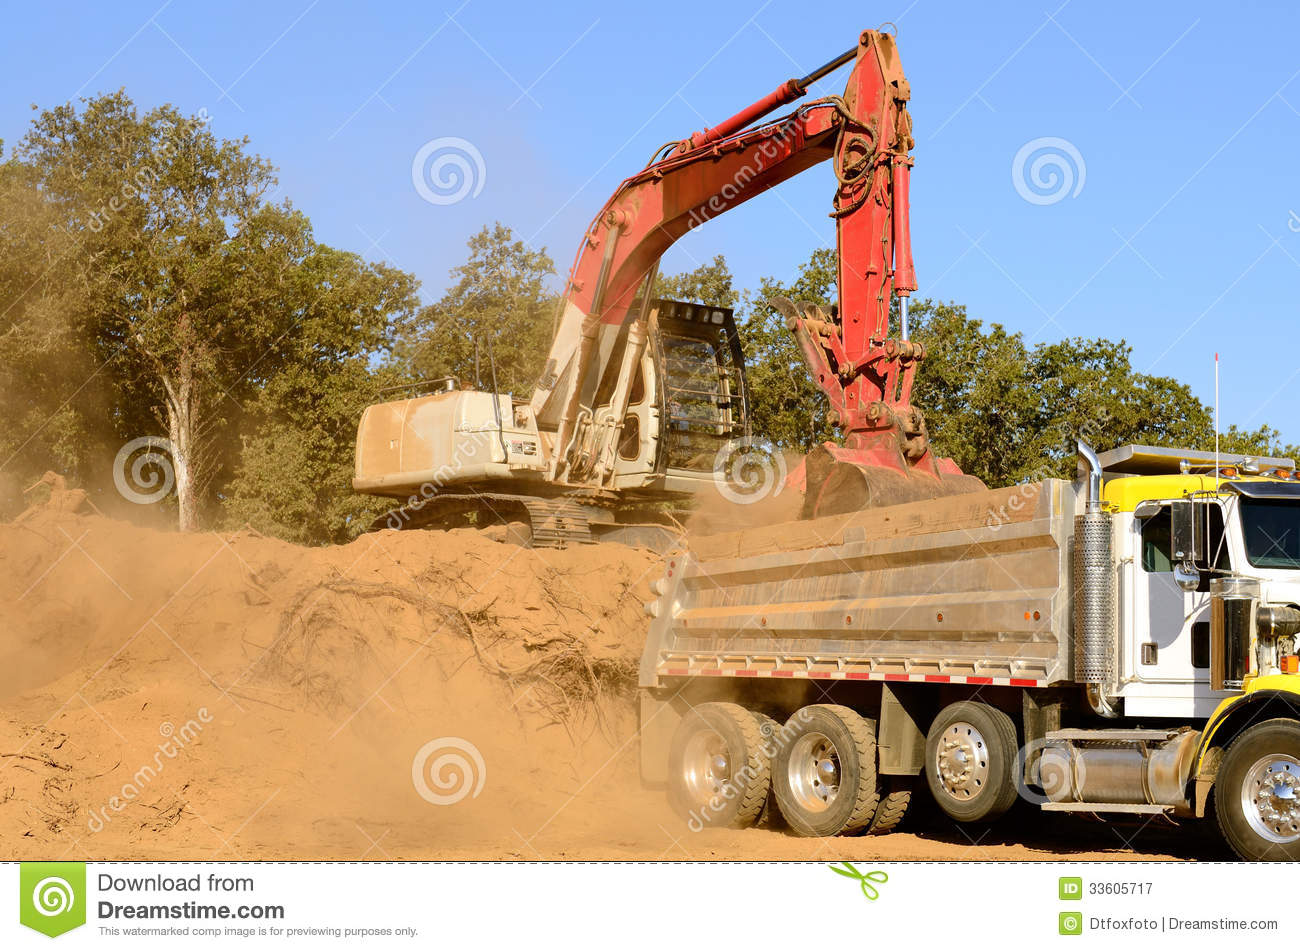 small track royalty free stock photography image 33605717